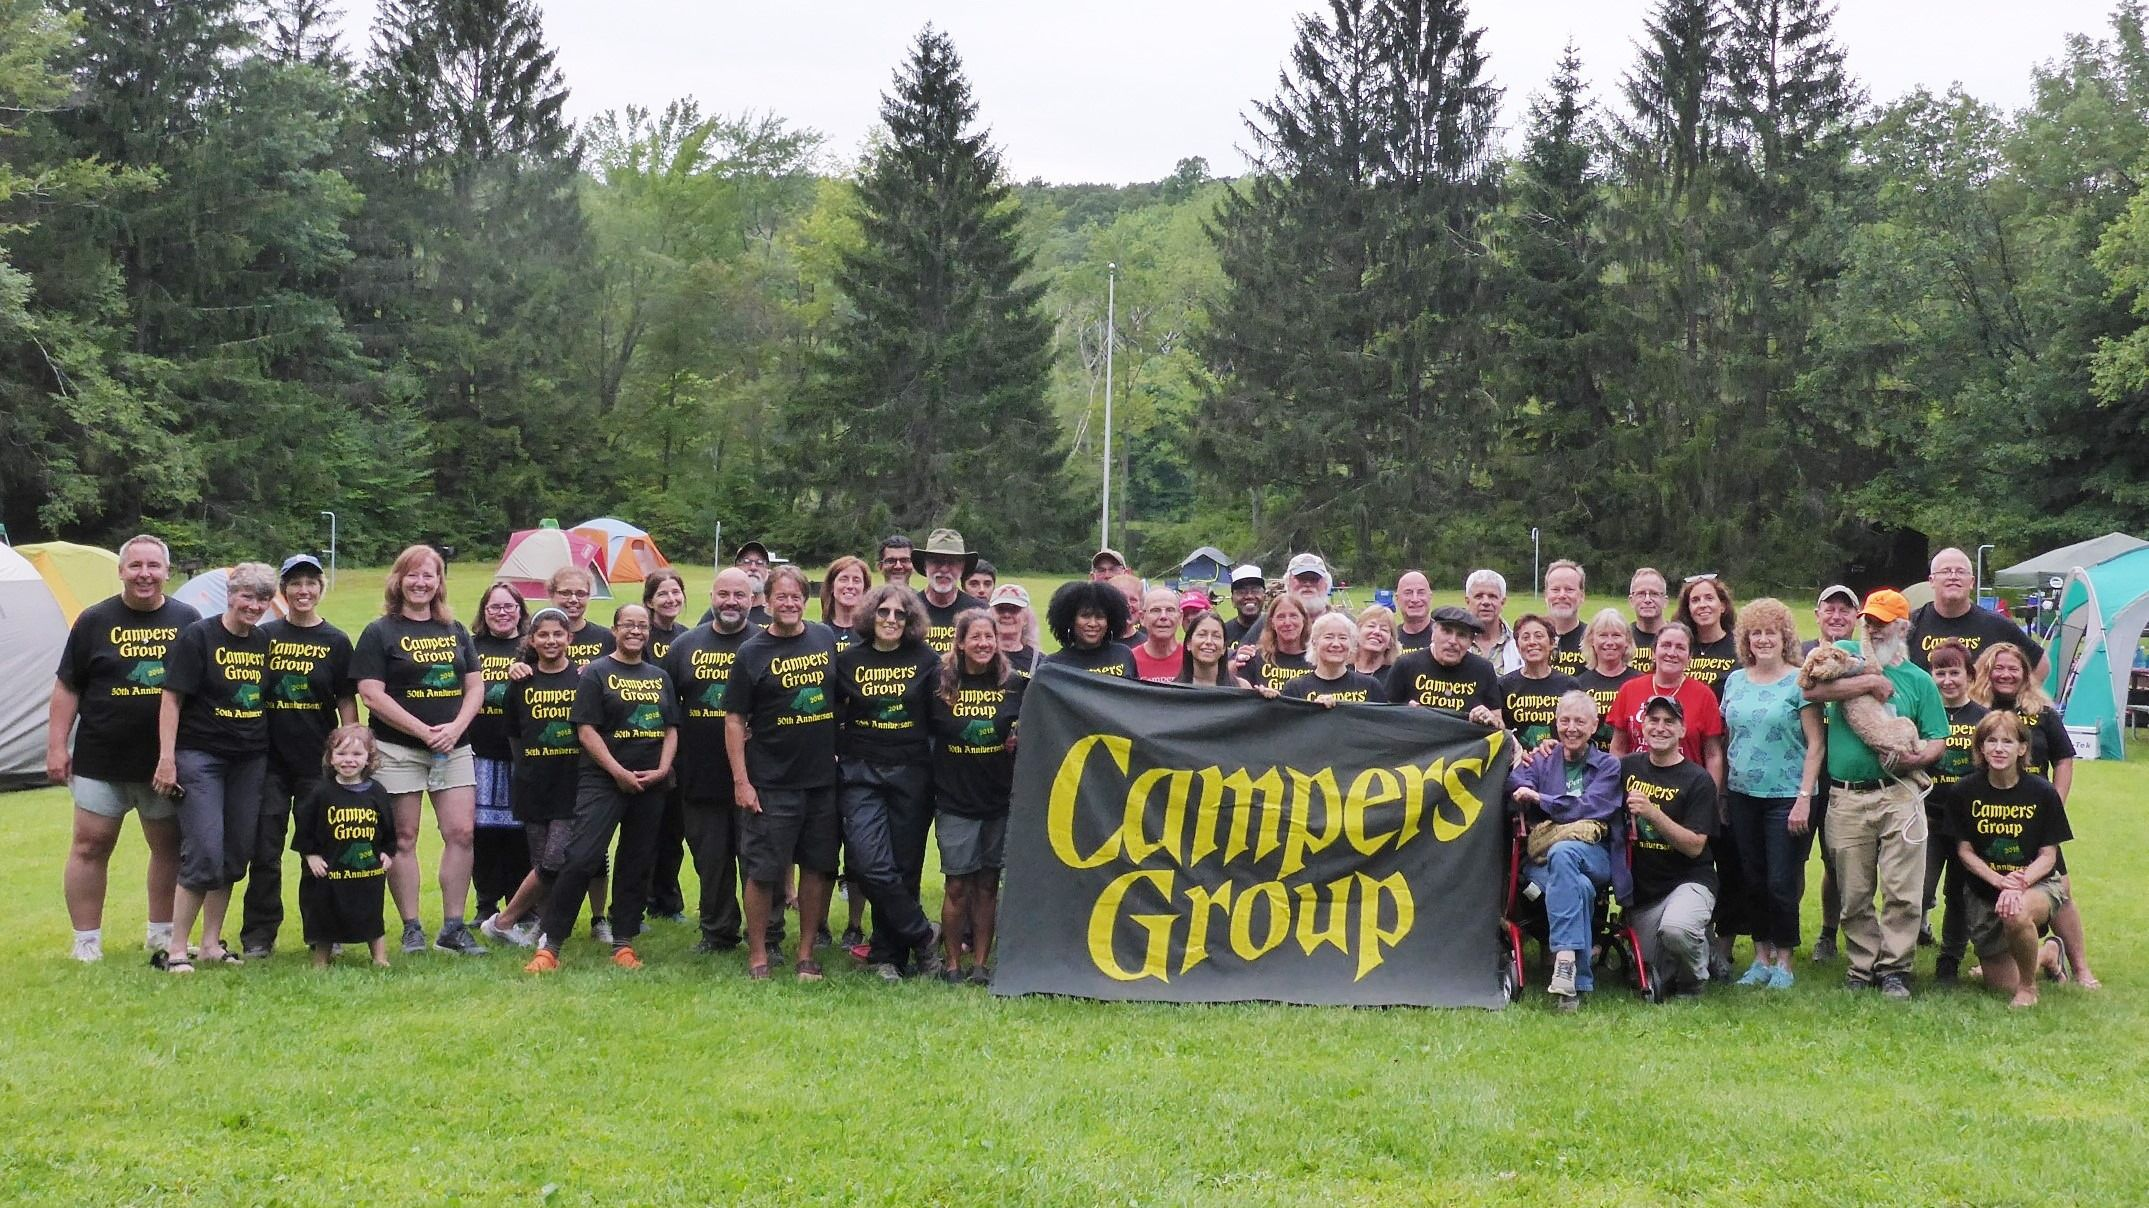 Campers' Group